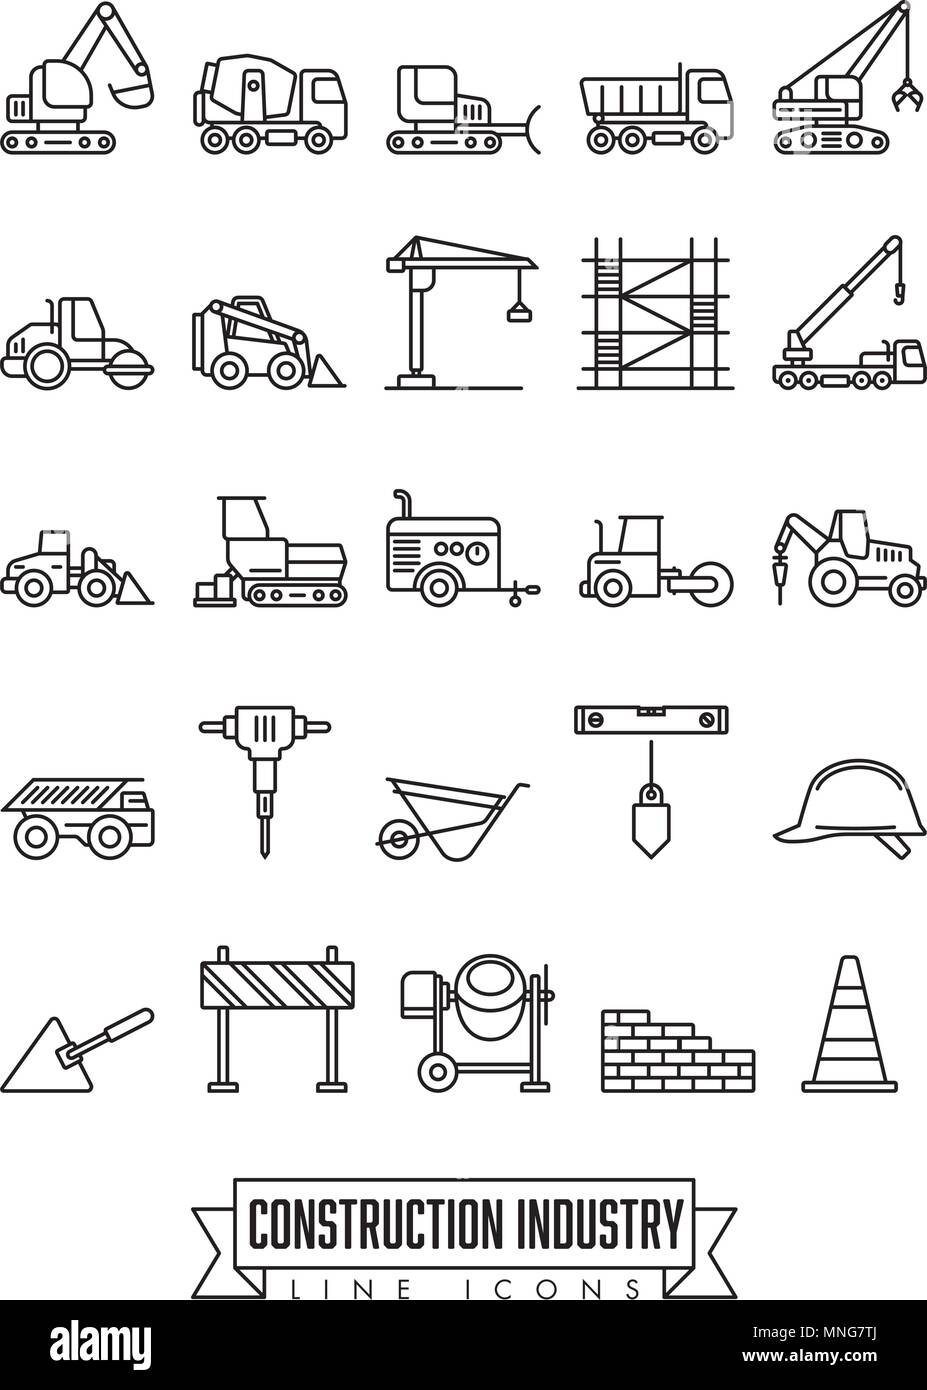 Industrial construction machinery and tools line icon collection Stock Vector